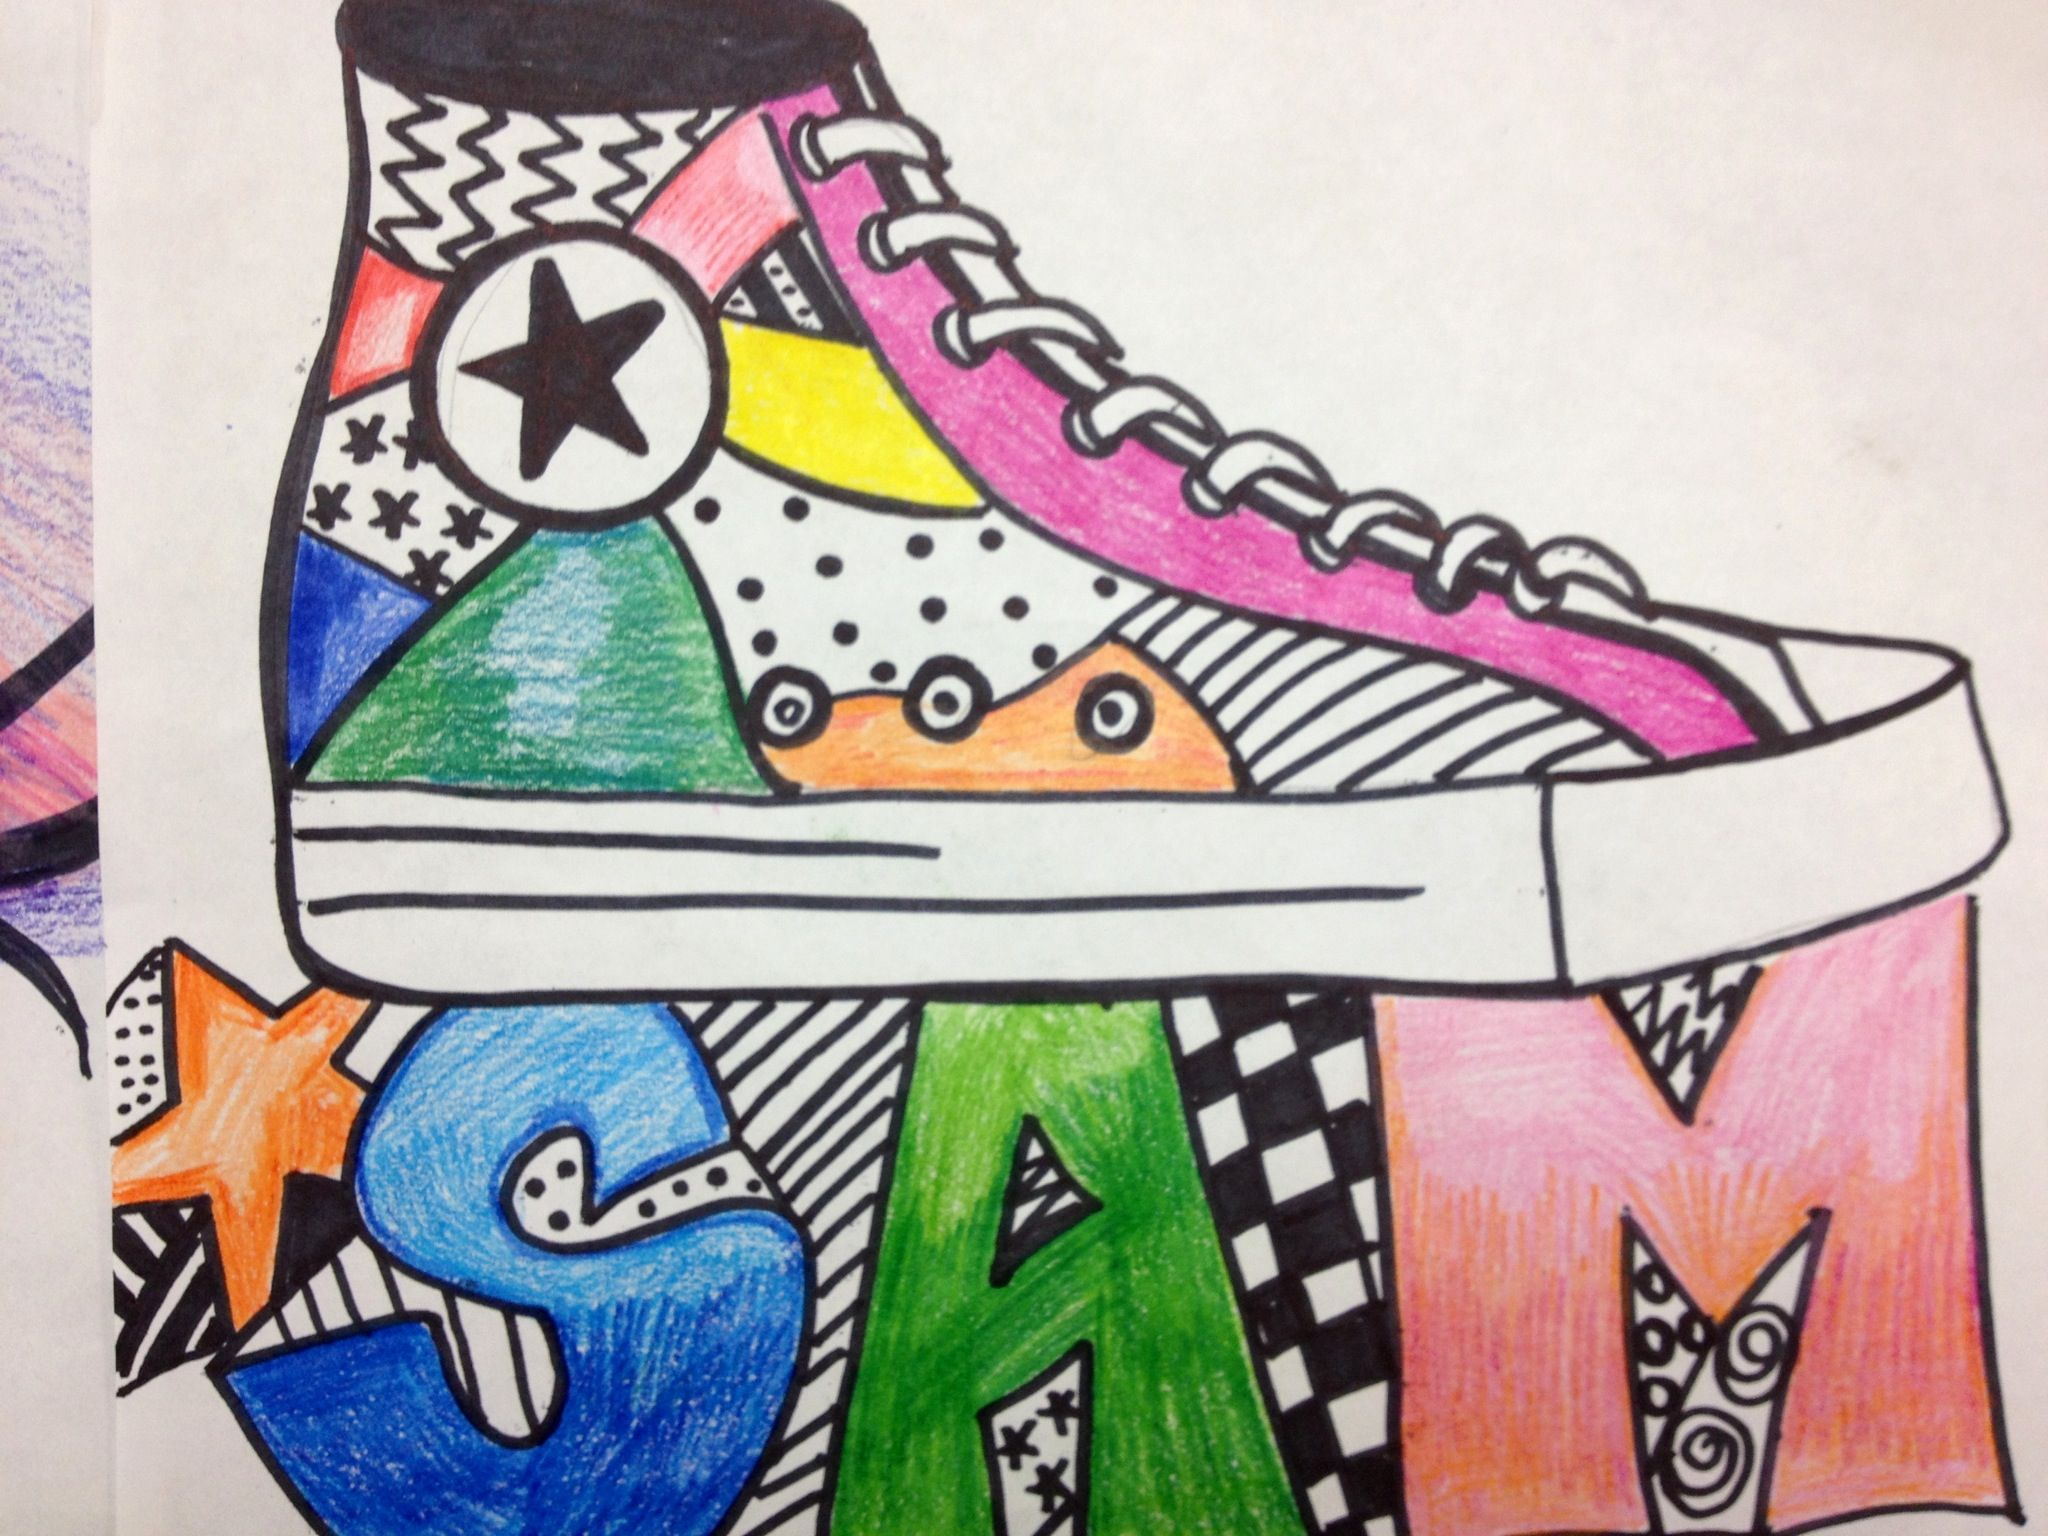 I Drew This Using Sharpies And Color Pencils To Teach Line